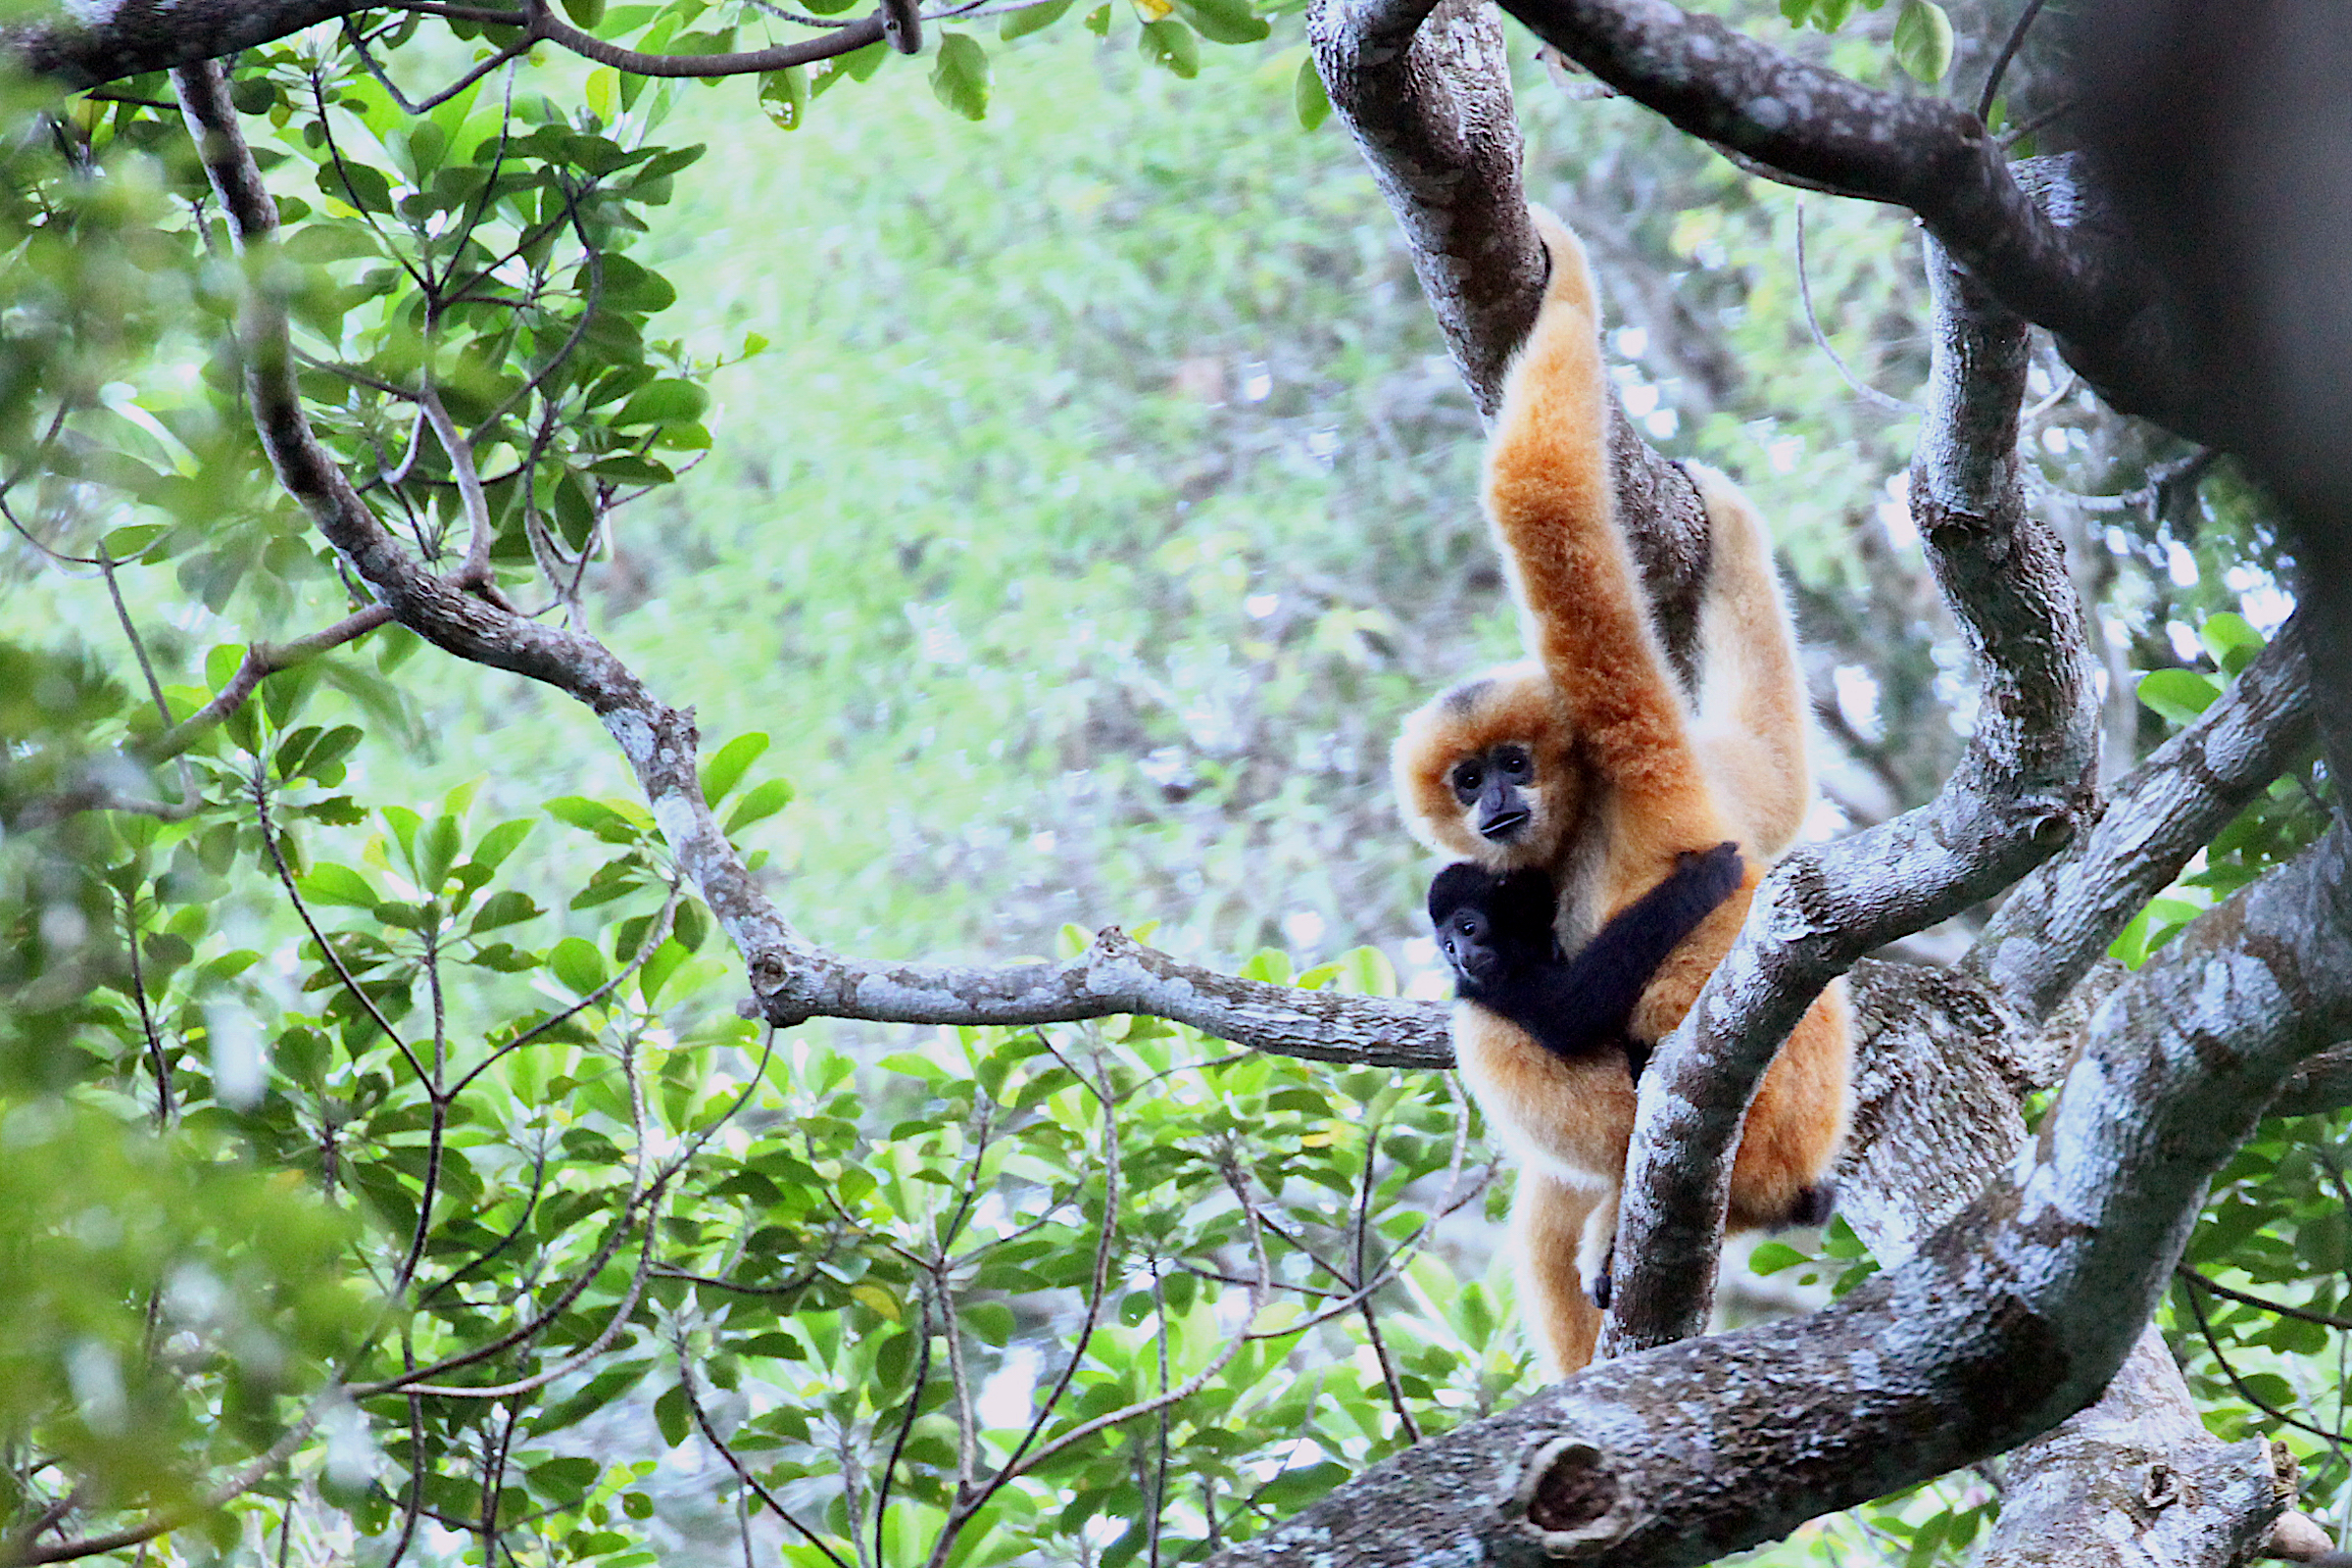 A young Hainan gibbon clings to its mother in the forest of the Bawangling National Nature Reserve in South China's Hainan Province. When born, both male and female gibbons have lighter fur which turns black after about a year. When females reach maturity, their fur turns to gold. Photograph courtesy of Kadoorie Farm & Botanic Garden